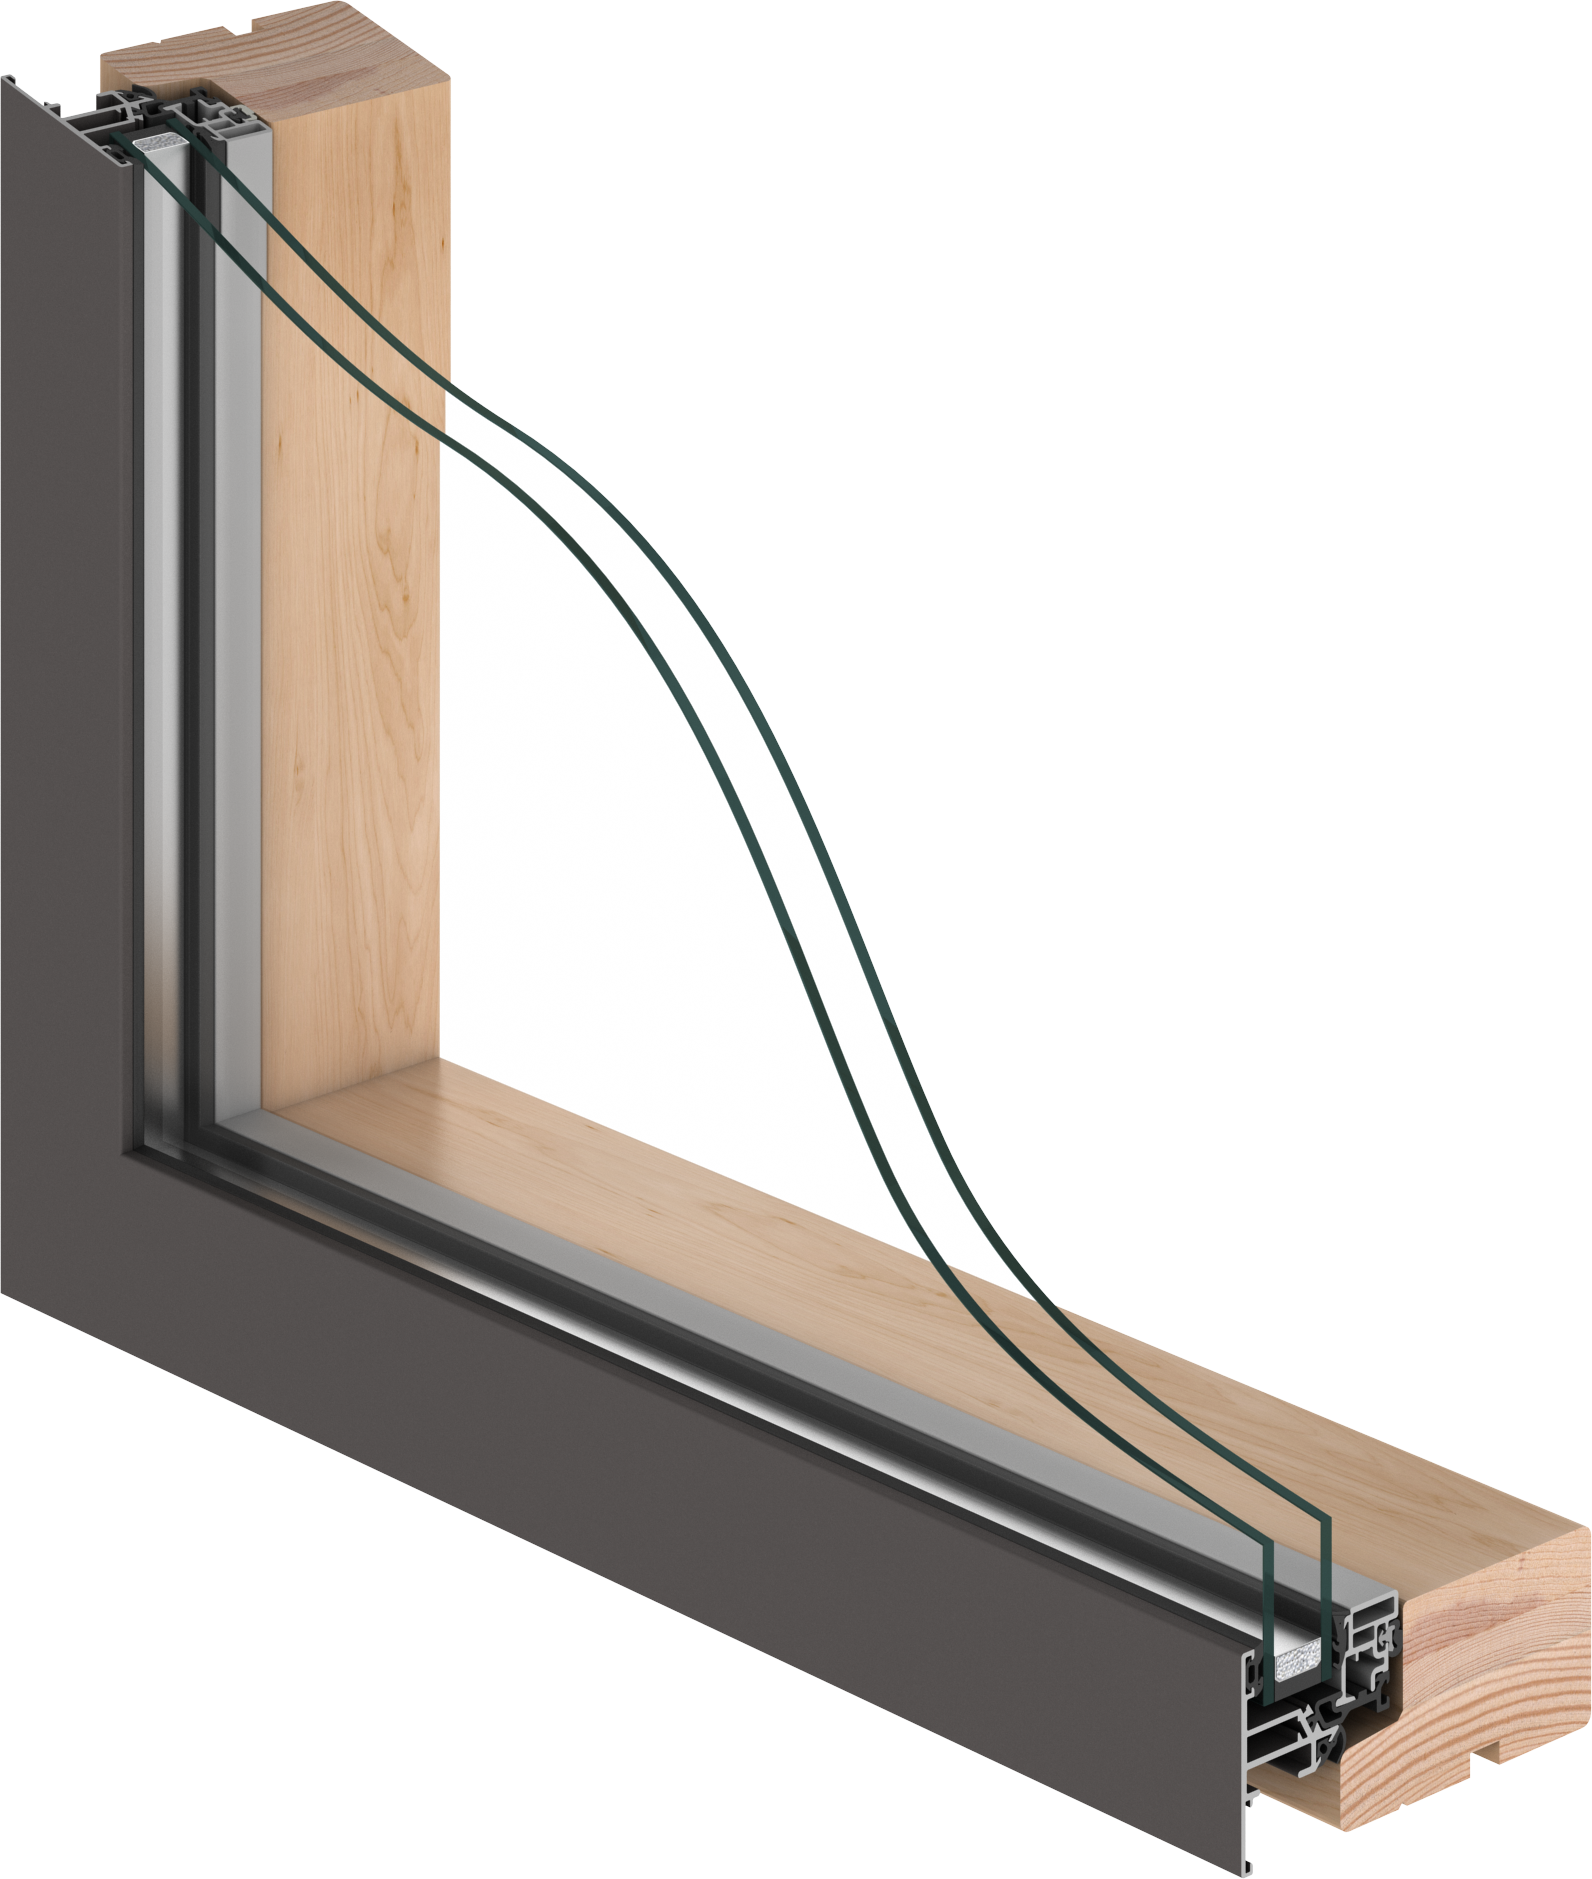 A stylished and sophisticated window with double glazing